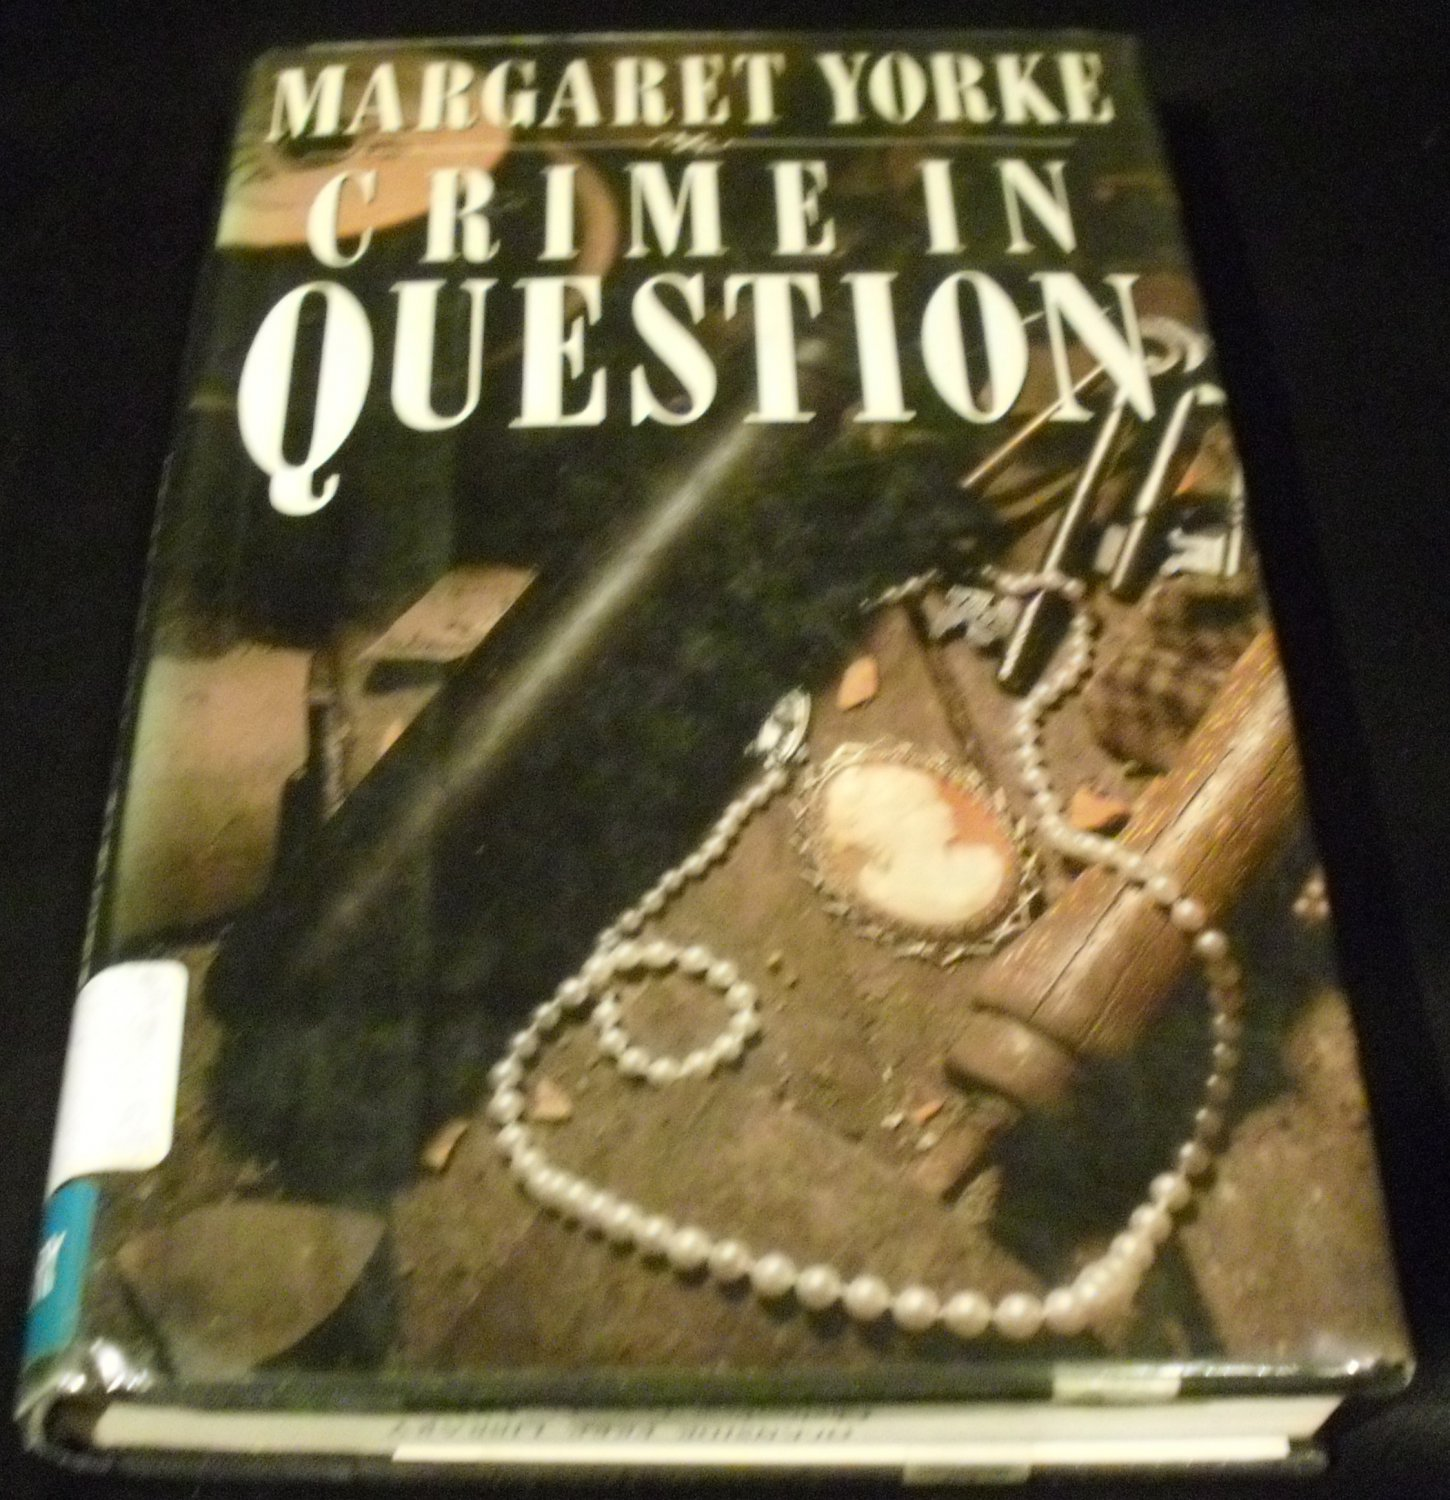 Crime in Question by Margaret Yorke (Hardcover, 1989)